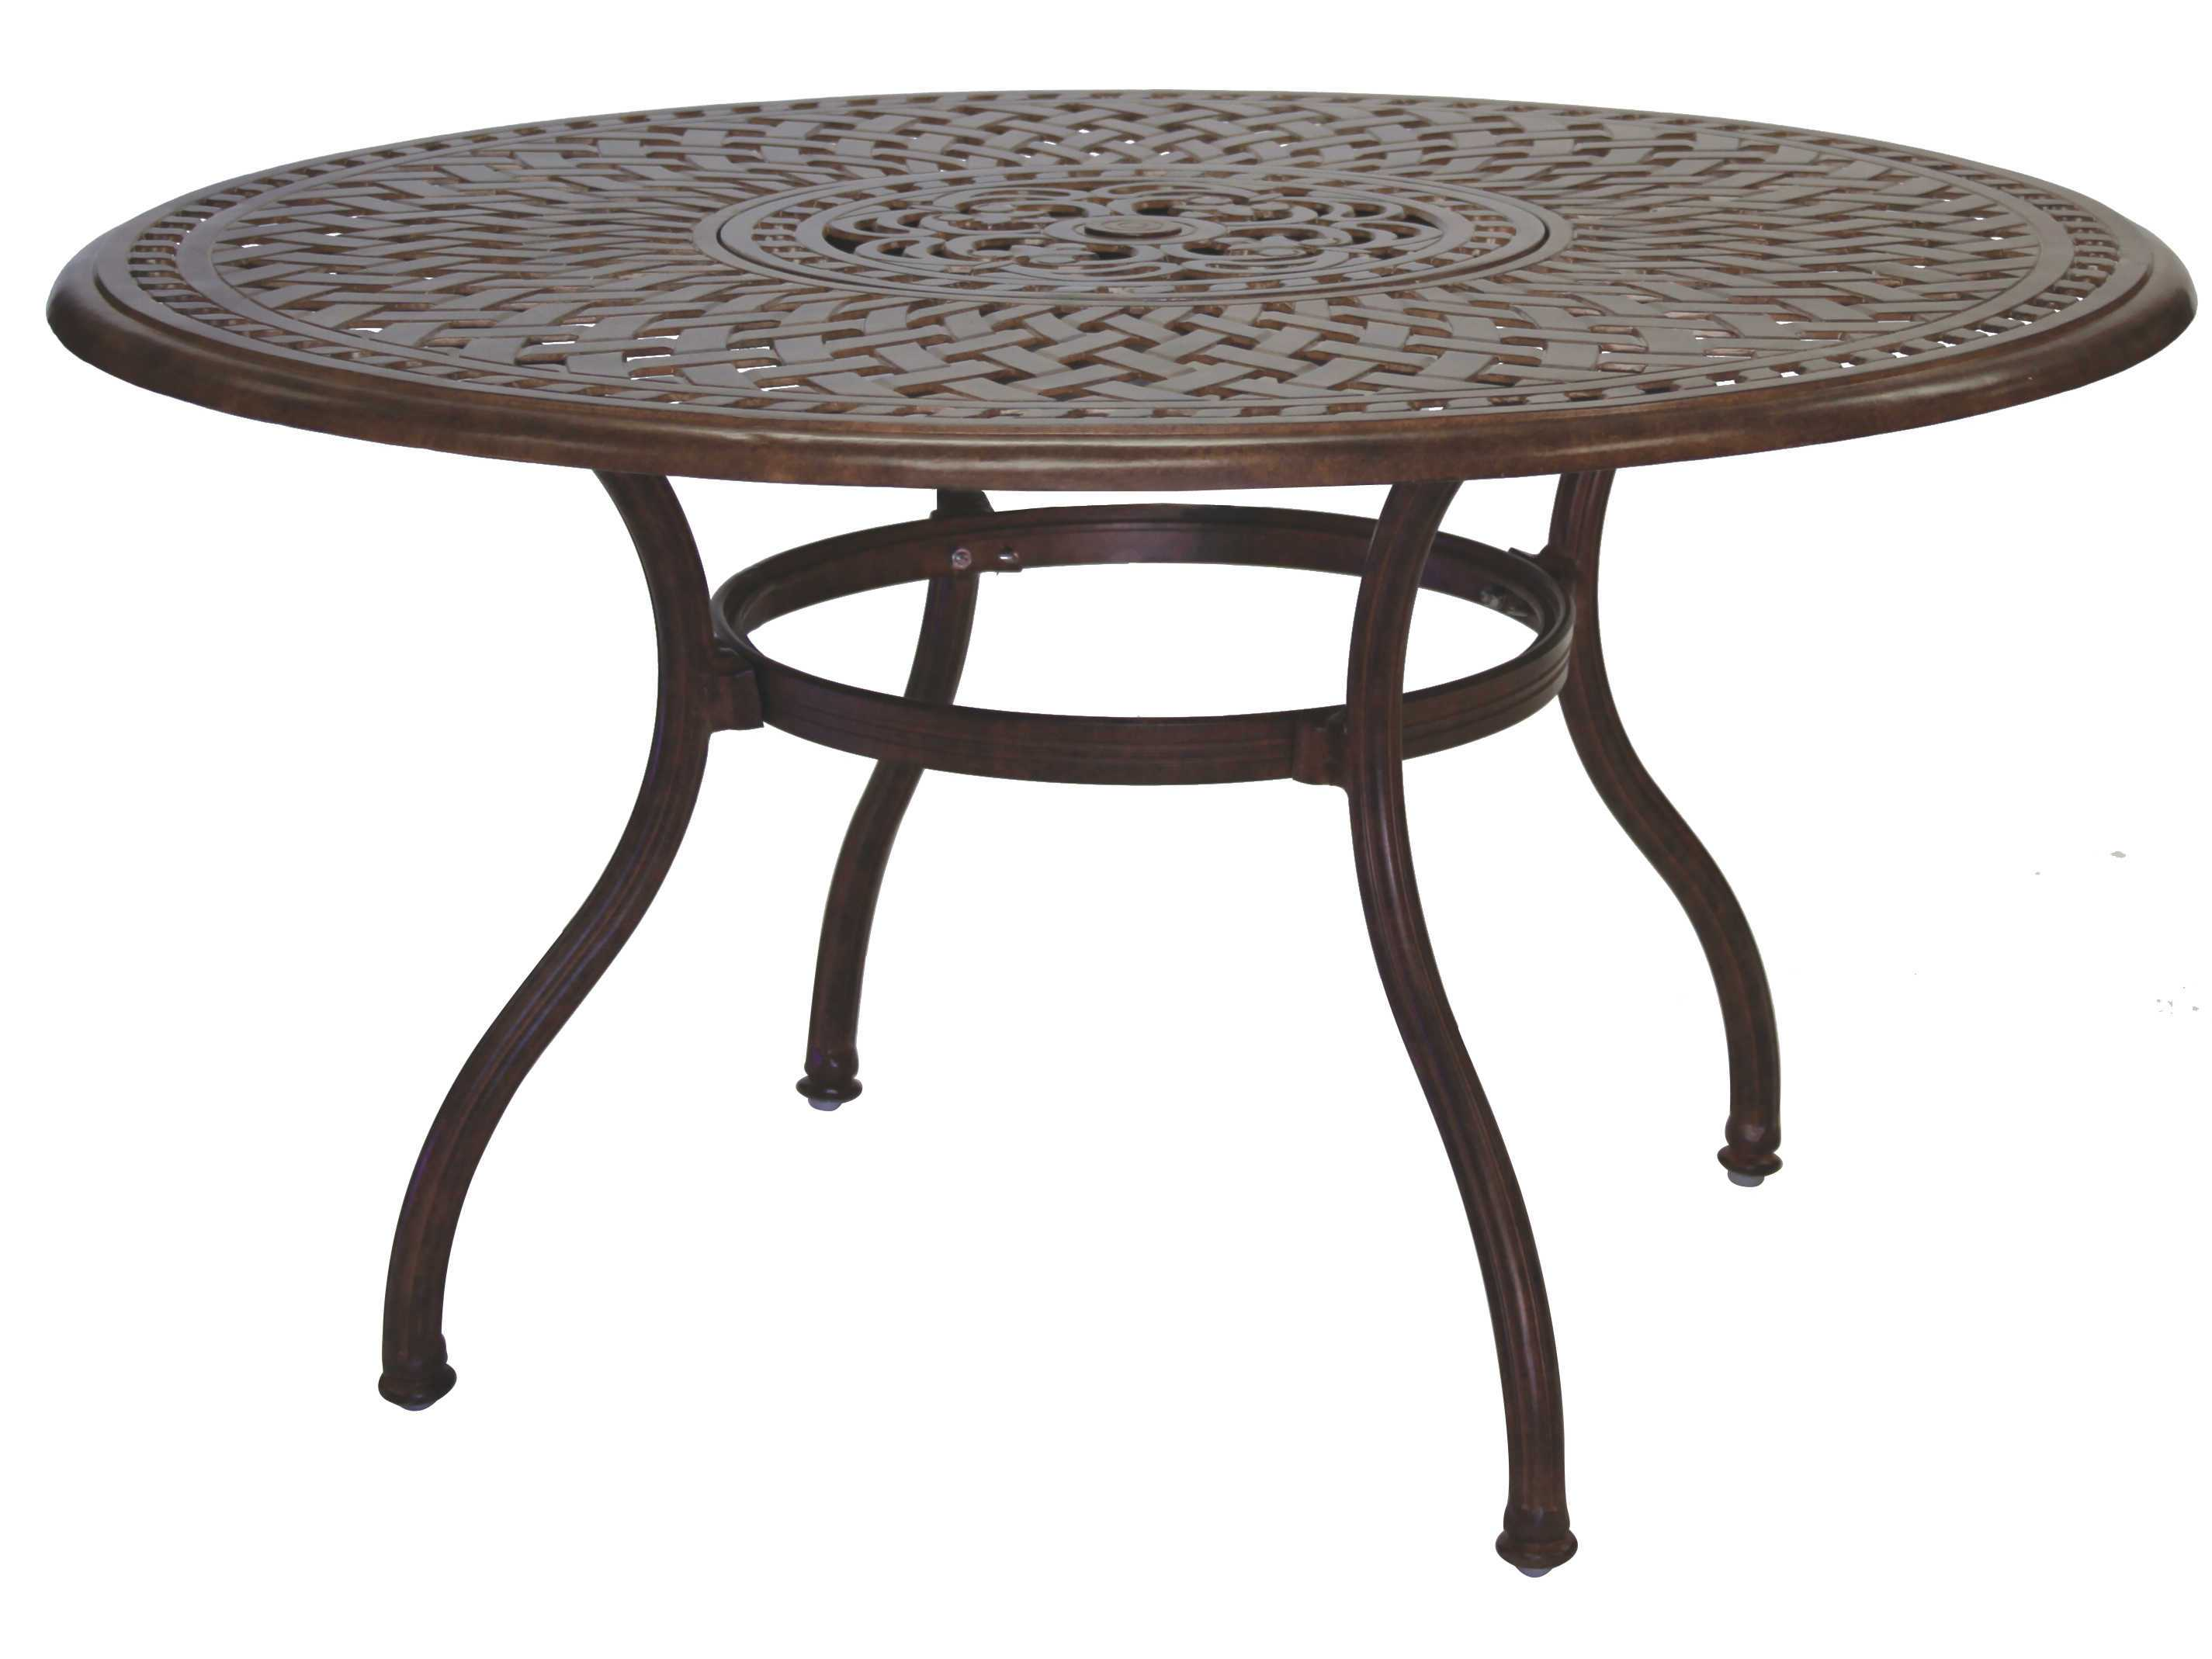 Darlee outdoor living series 60 cast aluminum 52 round for Round table 52 nordenham